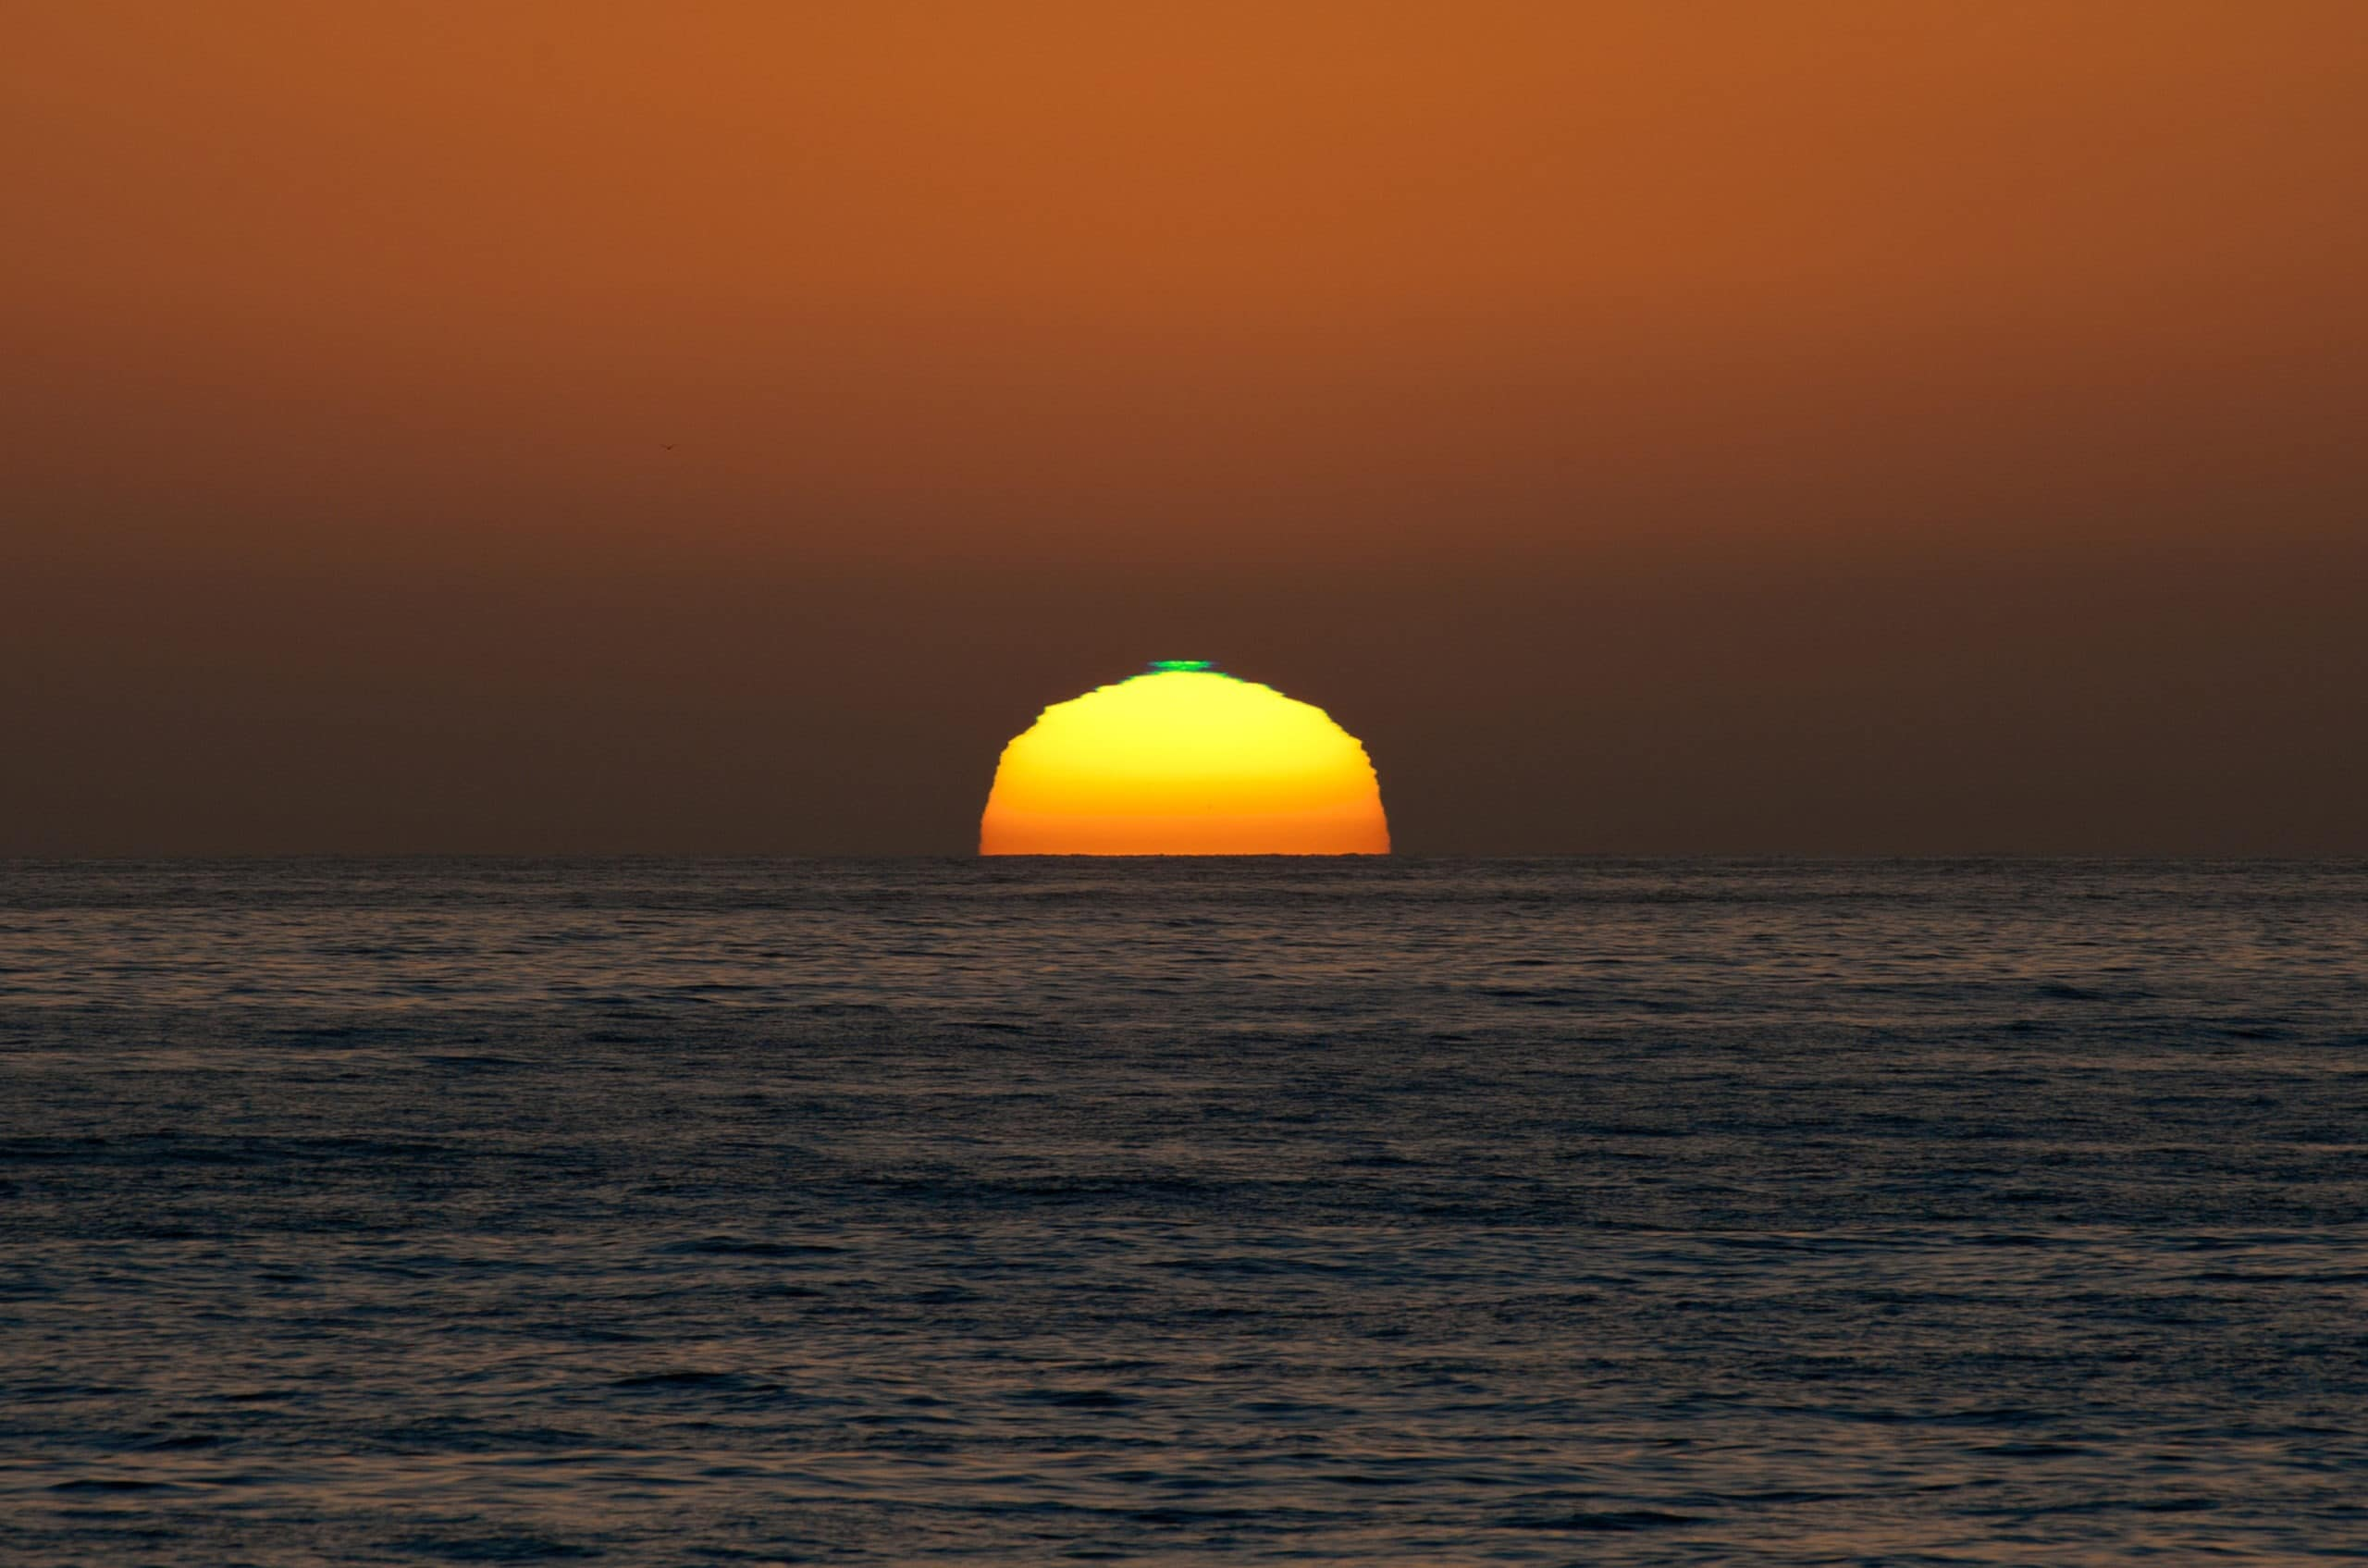 A sun setting below the ocean horizon with a small green line on top... the green flash.